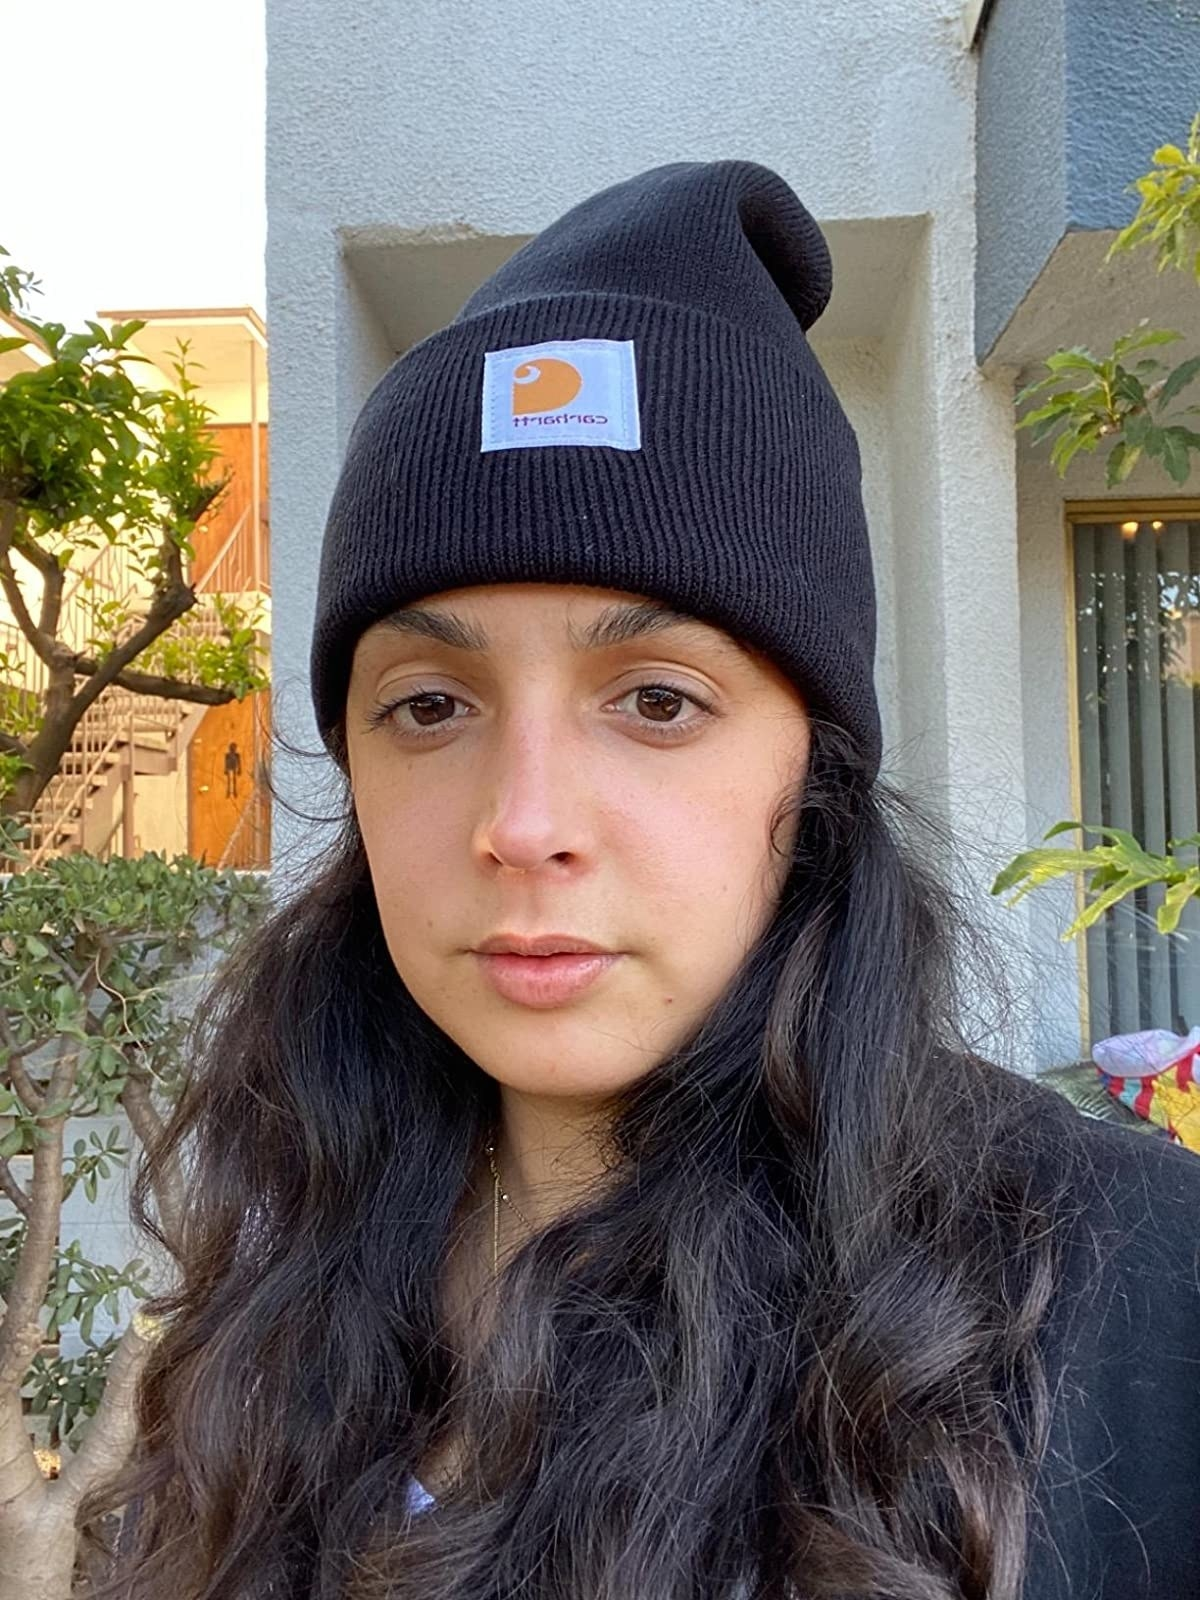 Reviewer wearing the black beanie